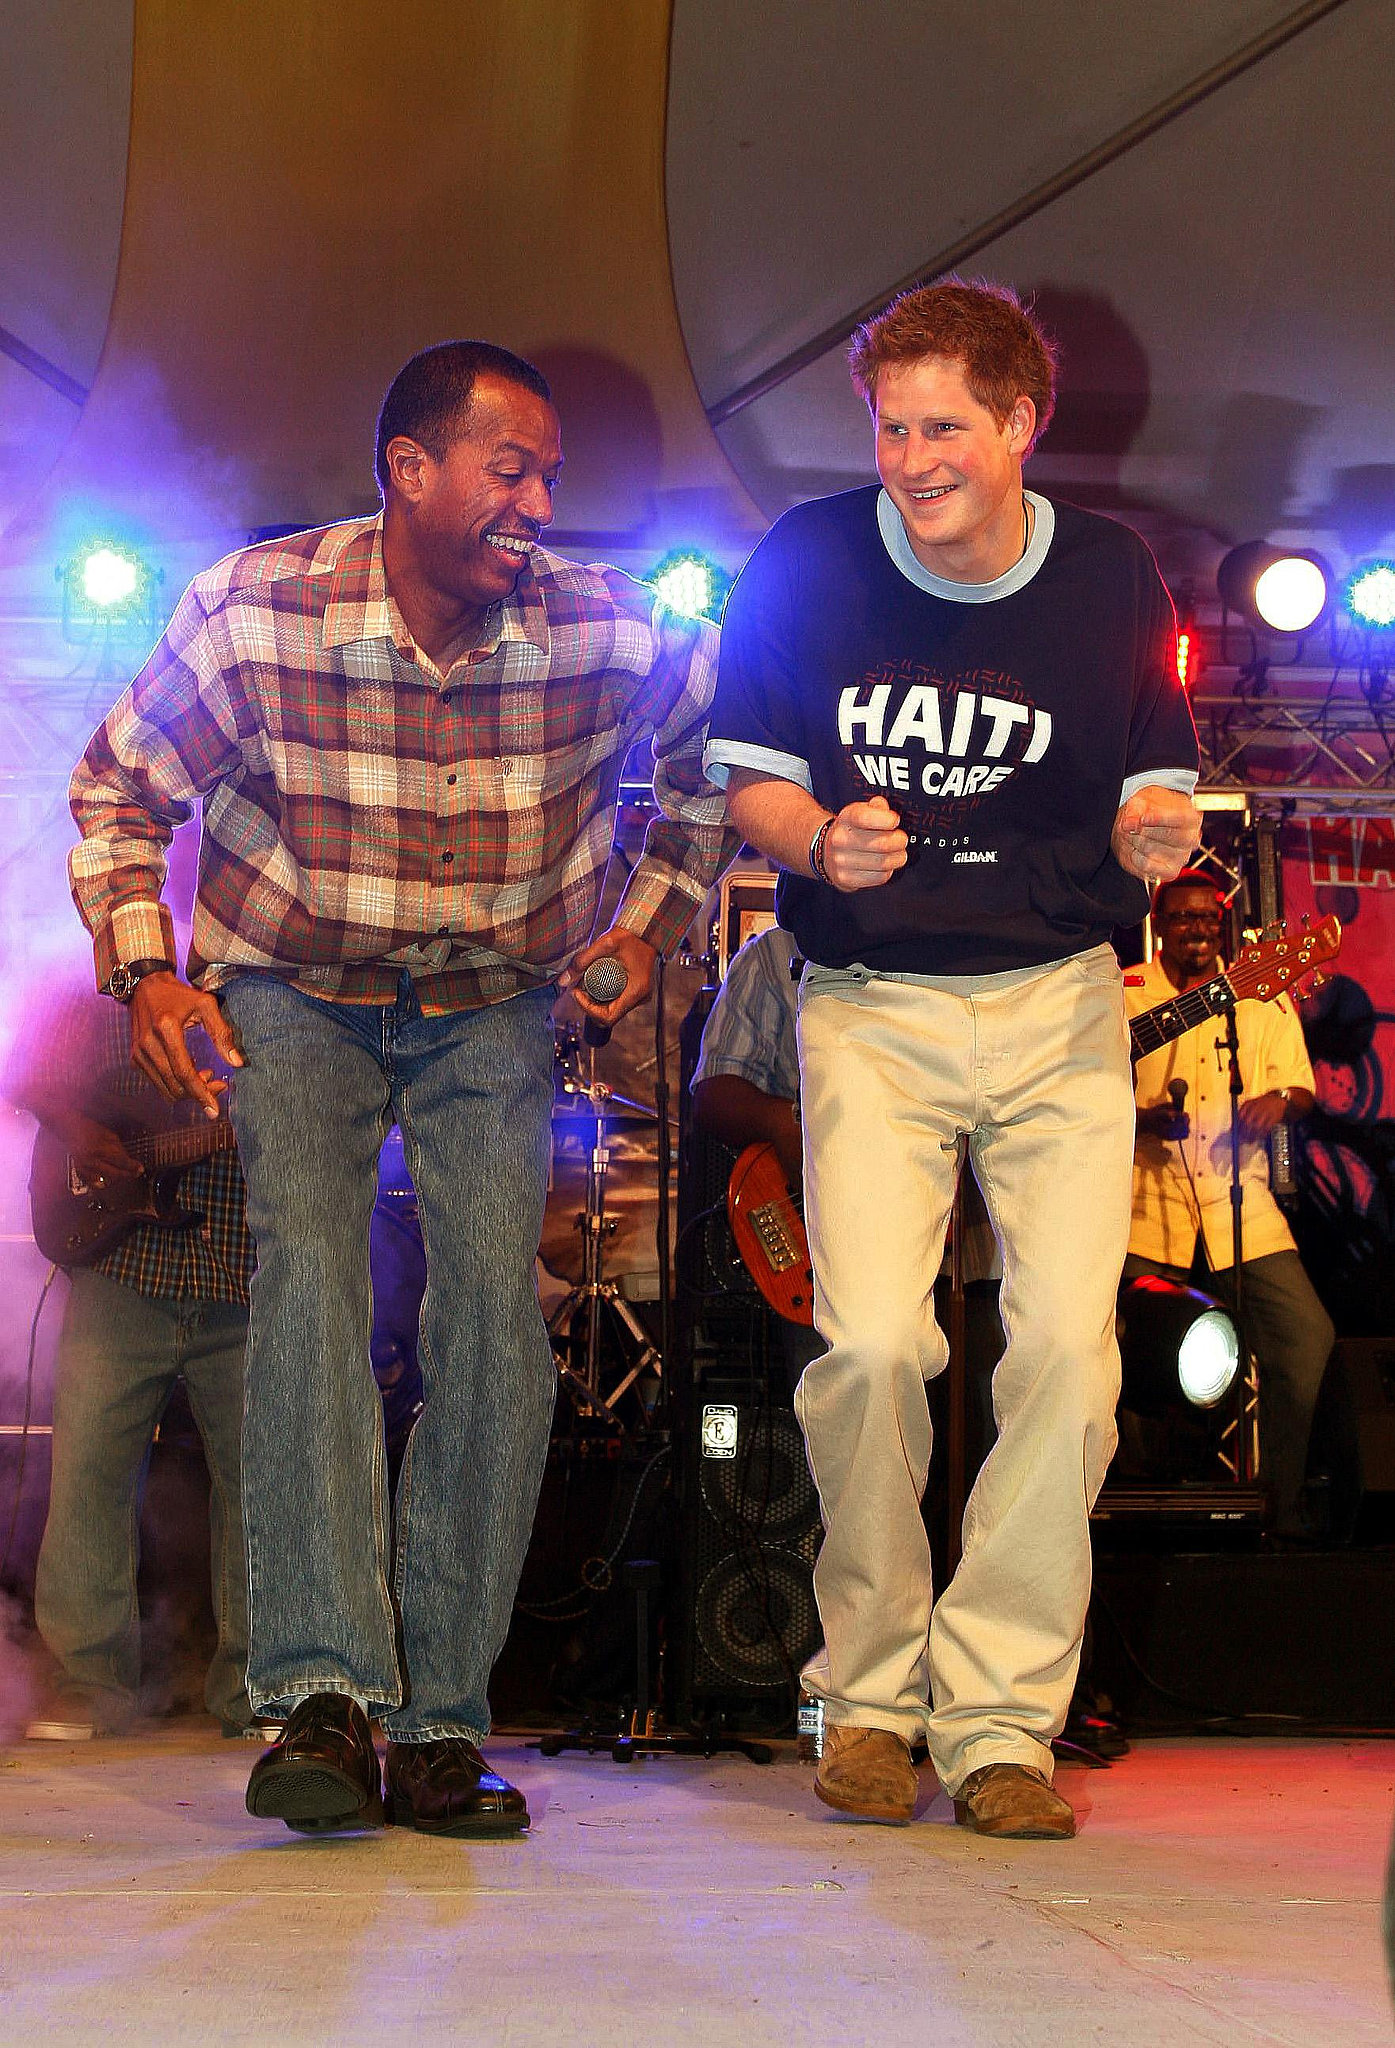 Prince Harry got on stage to show off his moves during a visit to Barbados in January 2010.